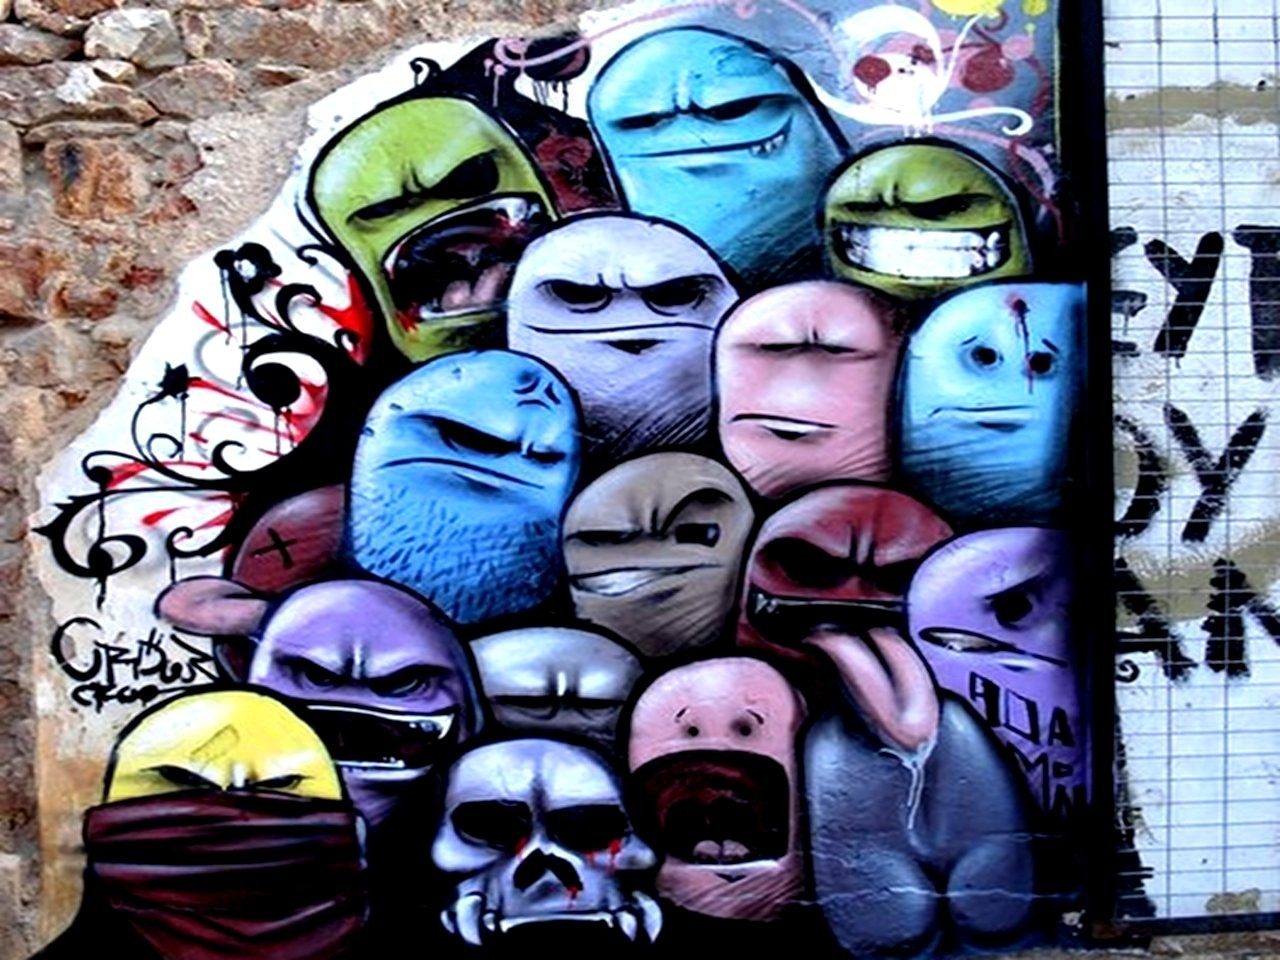 Collection of Graffiti Wallpapers Hd Free Download on HDWallpapers